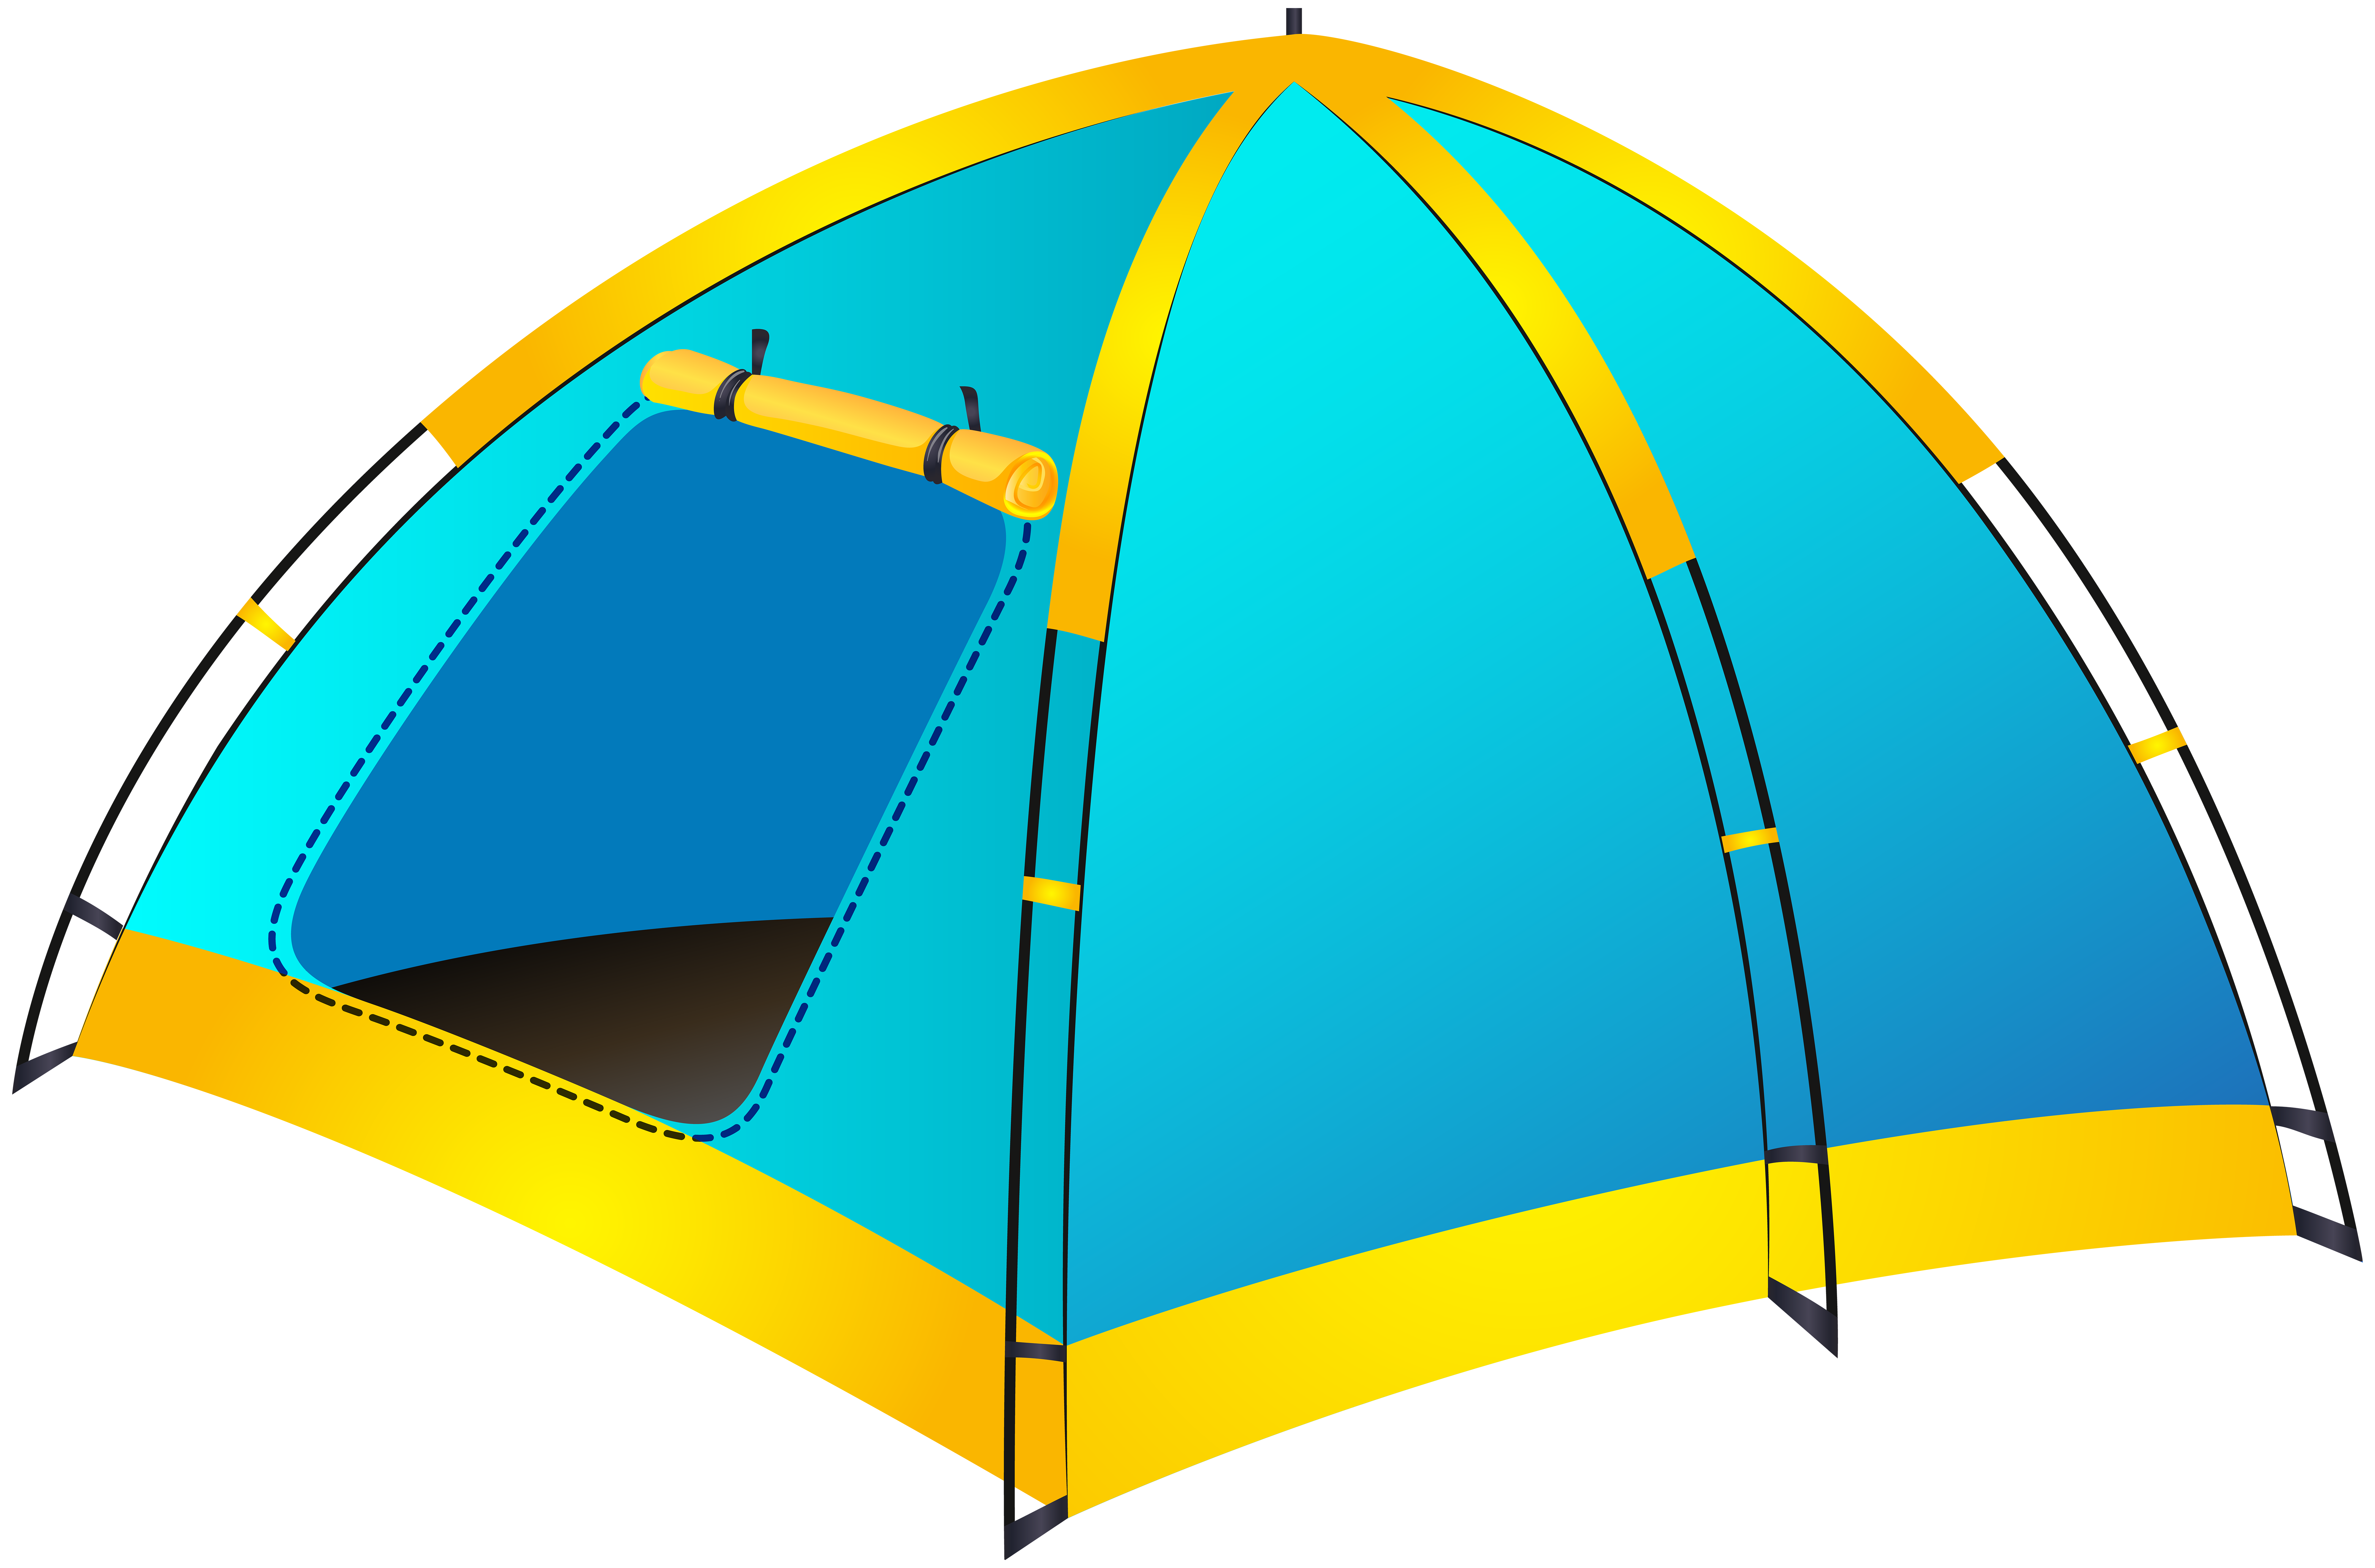 Tent clipart teal View size Image Blue Art